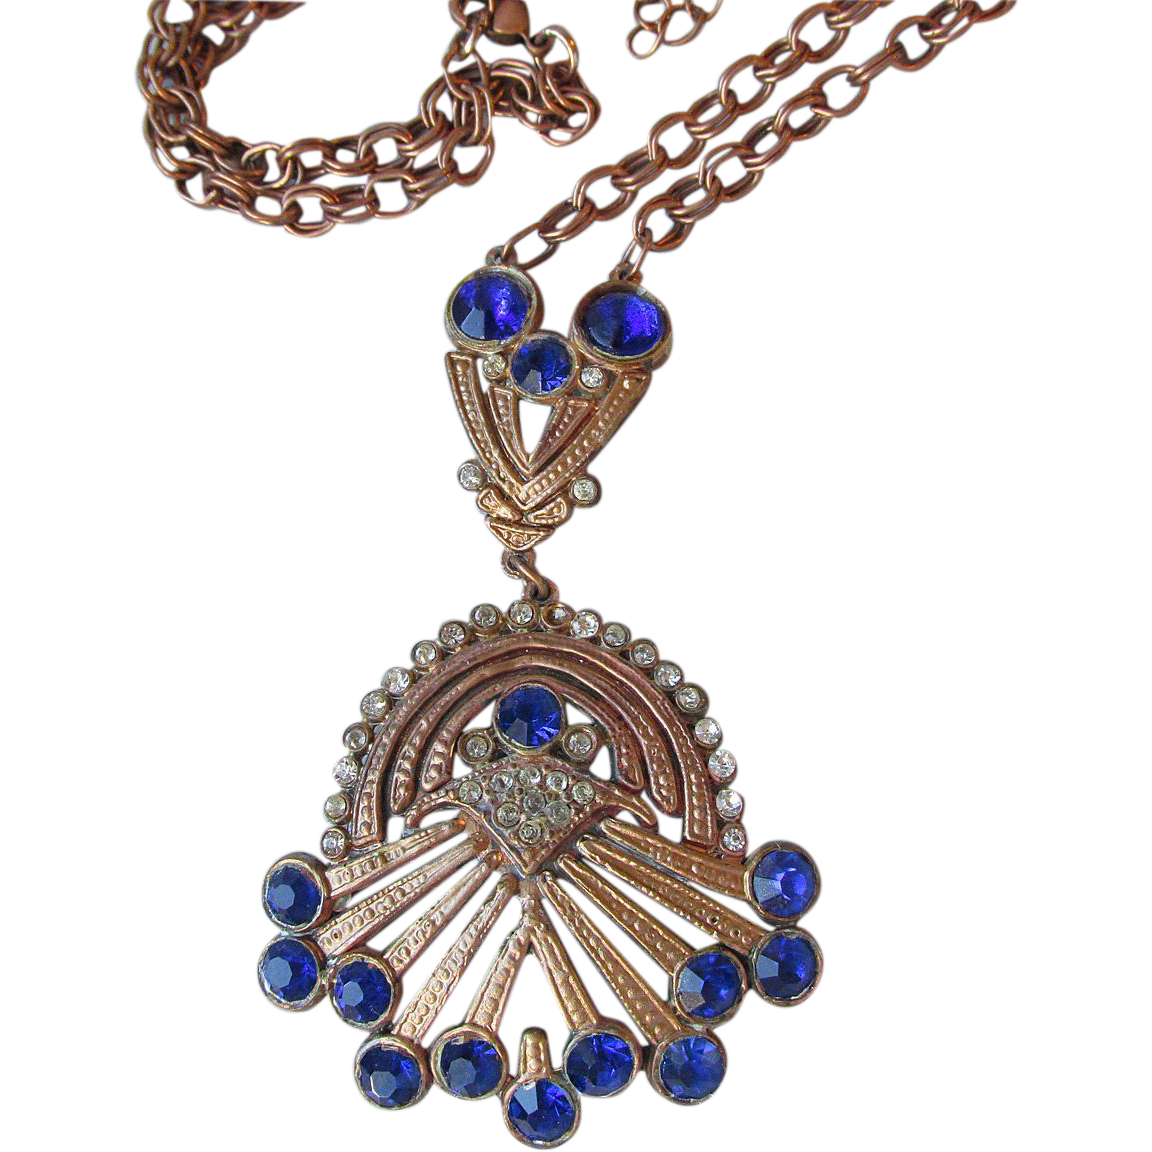 Exquisite Vintage 1930's Art Deco Copper Tone & Sapphire Blue Rhinestone Refurbished Necklace